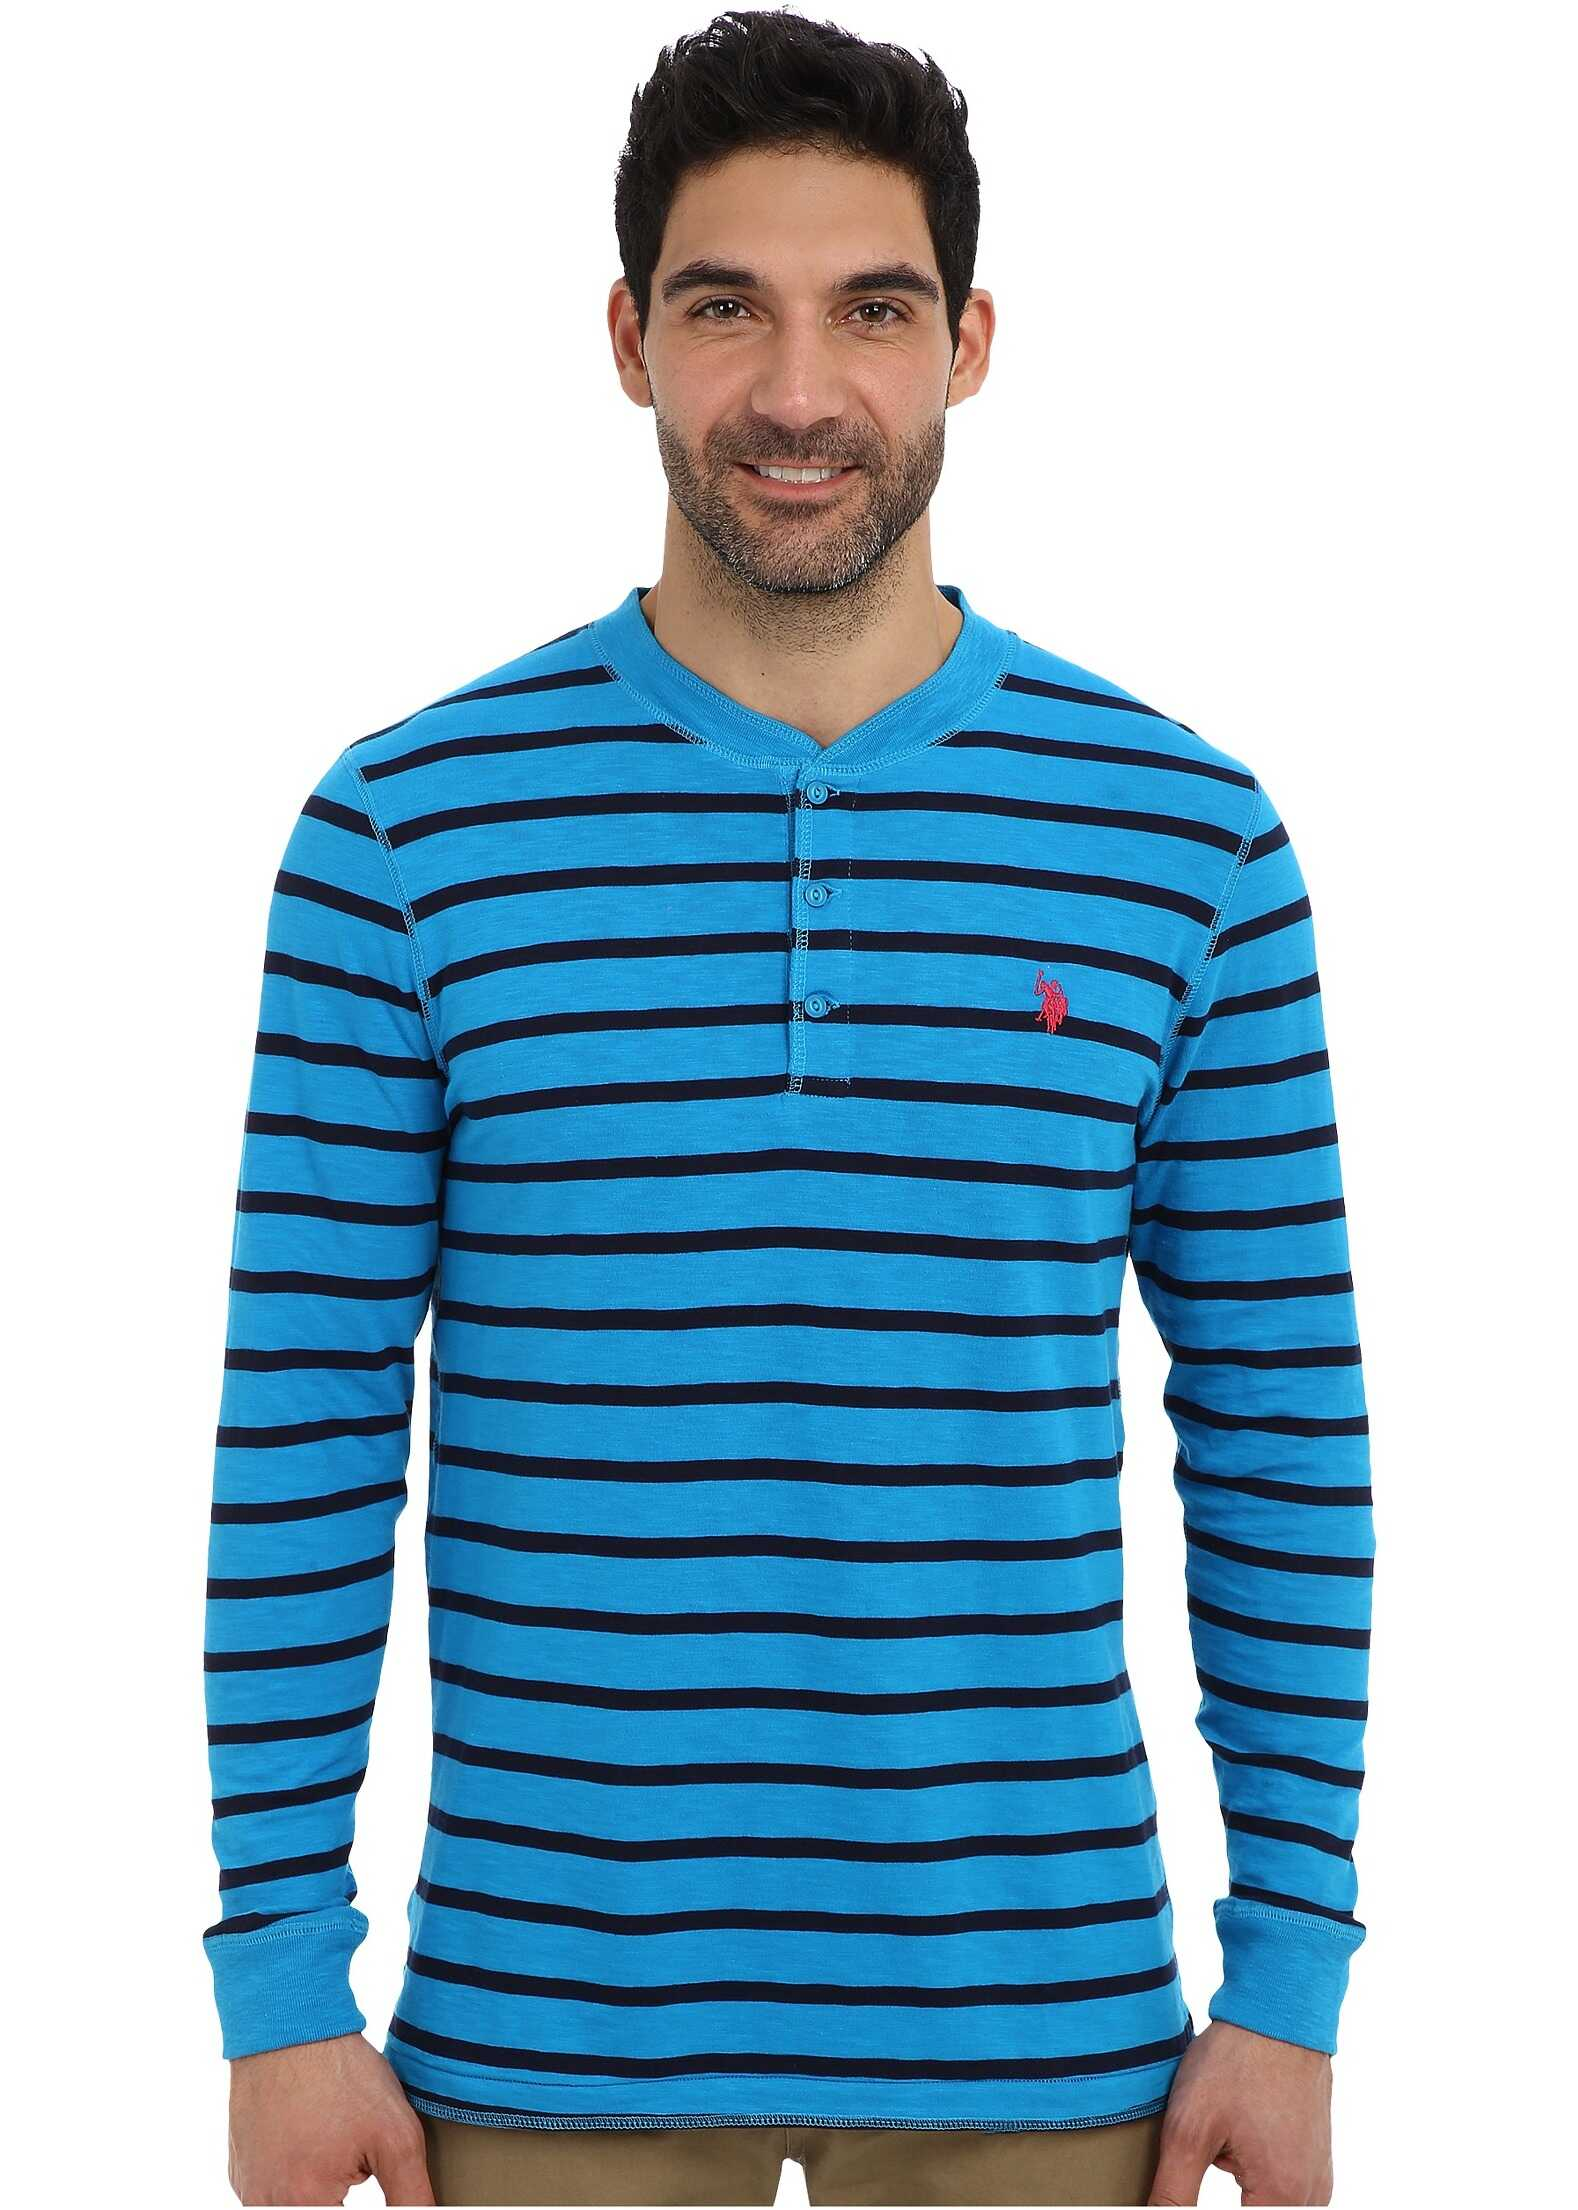 U.S. POLO ASSN. Slim Fit Long Sleeve Slub Henley w/ Stripes Teal Blue